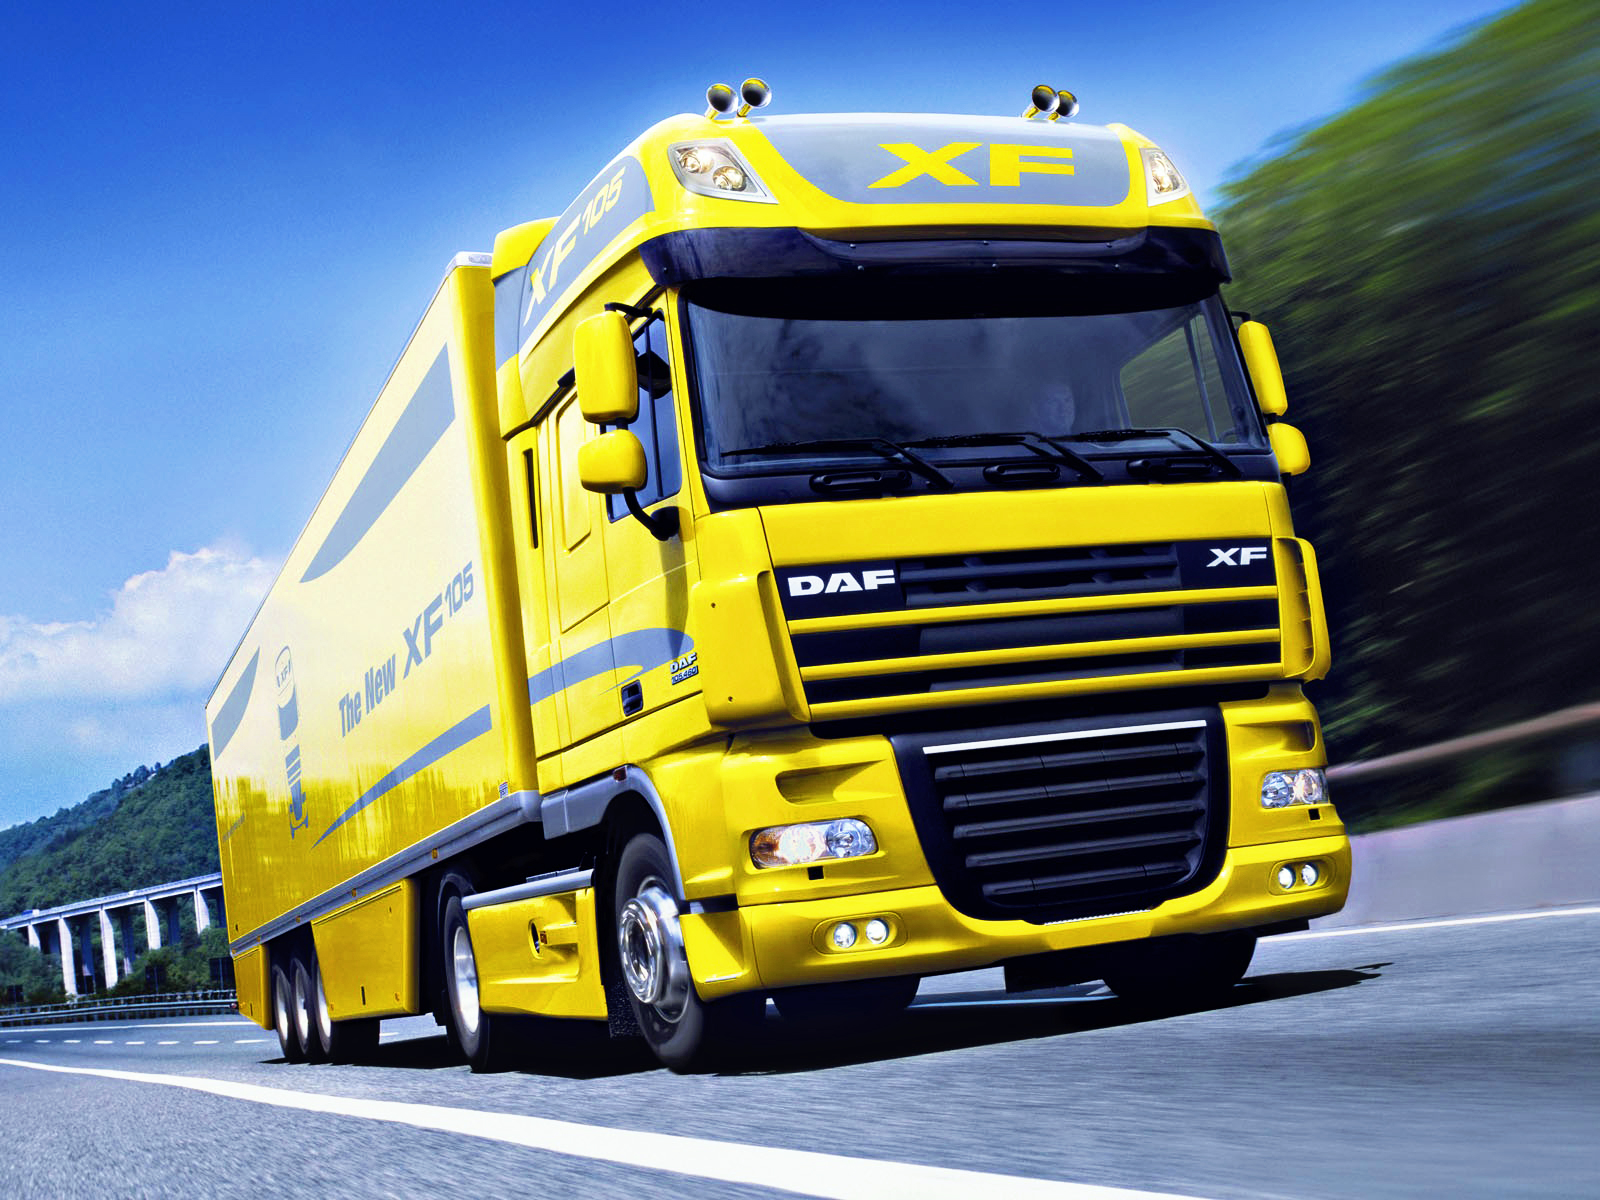 DAF XF 2013 - Truck wallpapers - Wallp.eu